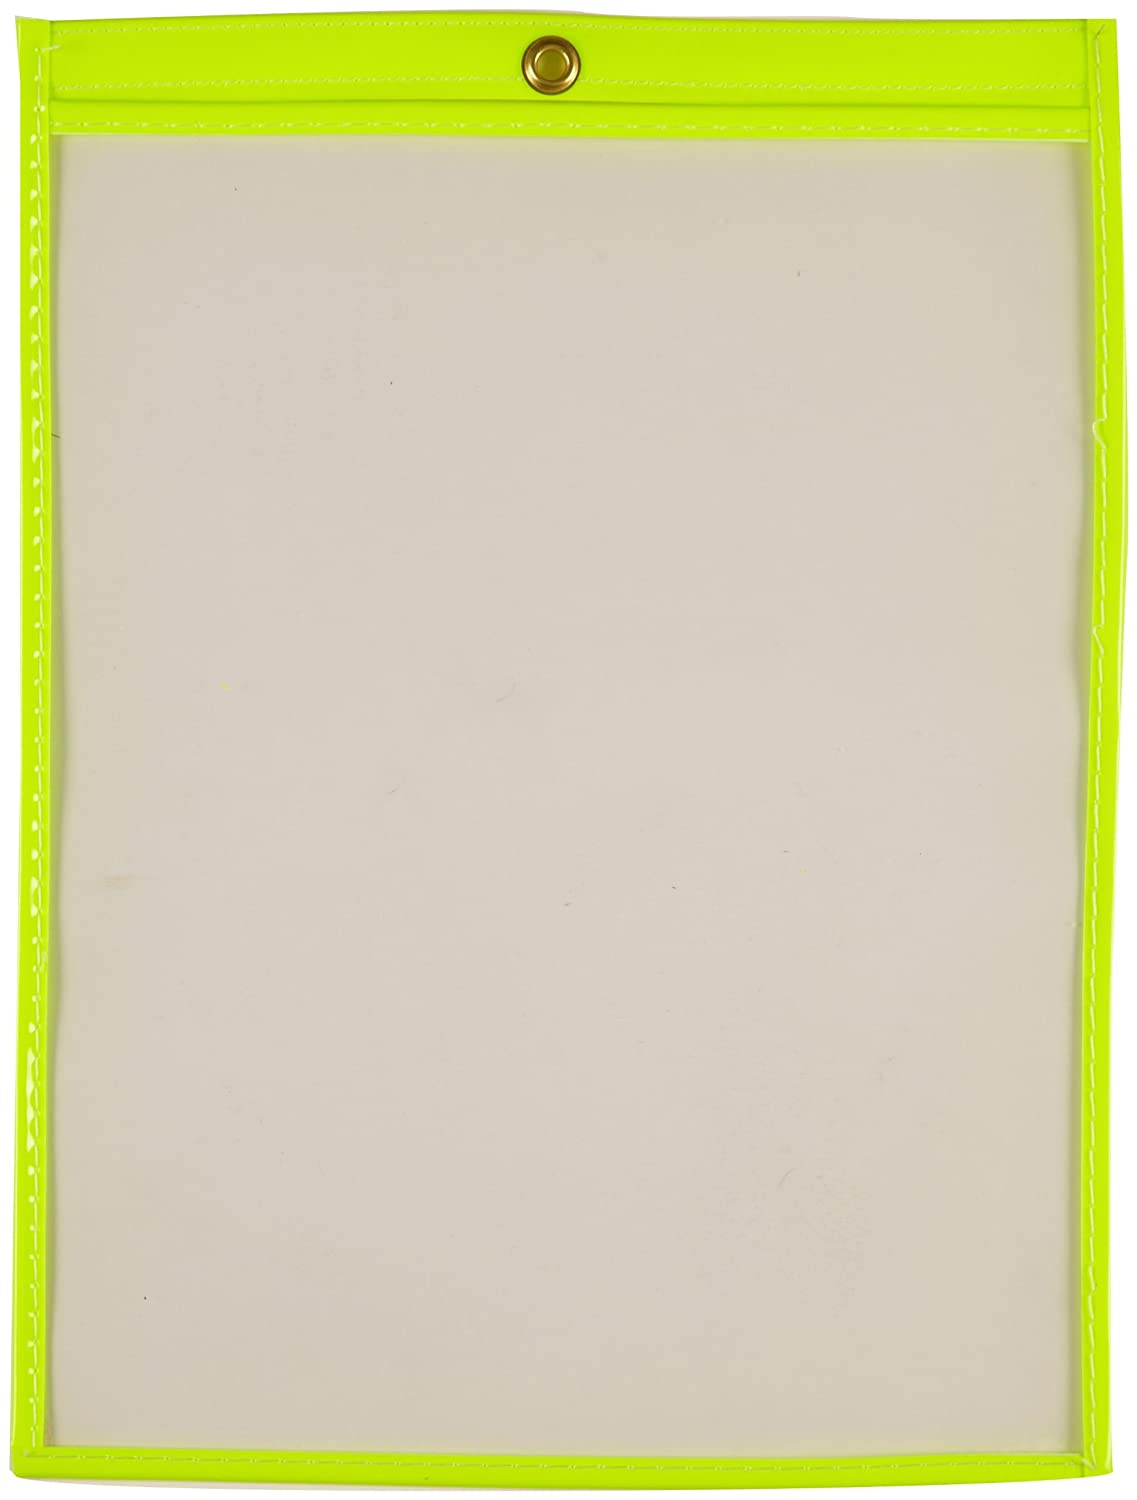 Brady 56948 12 Height Pack Of 25 9 Width Plastic Fluorescent Yellow Trimmed Color Fluorescent Shop Envelopes